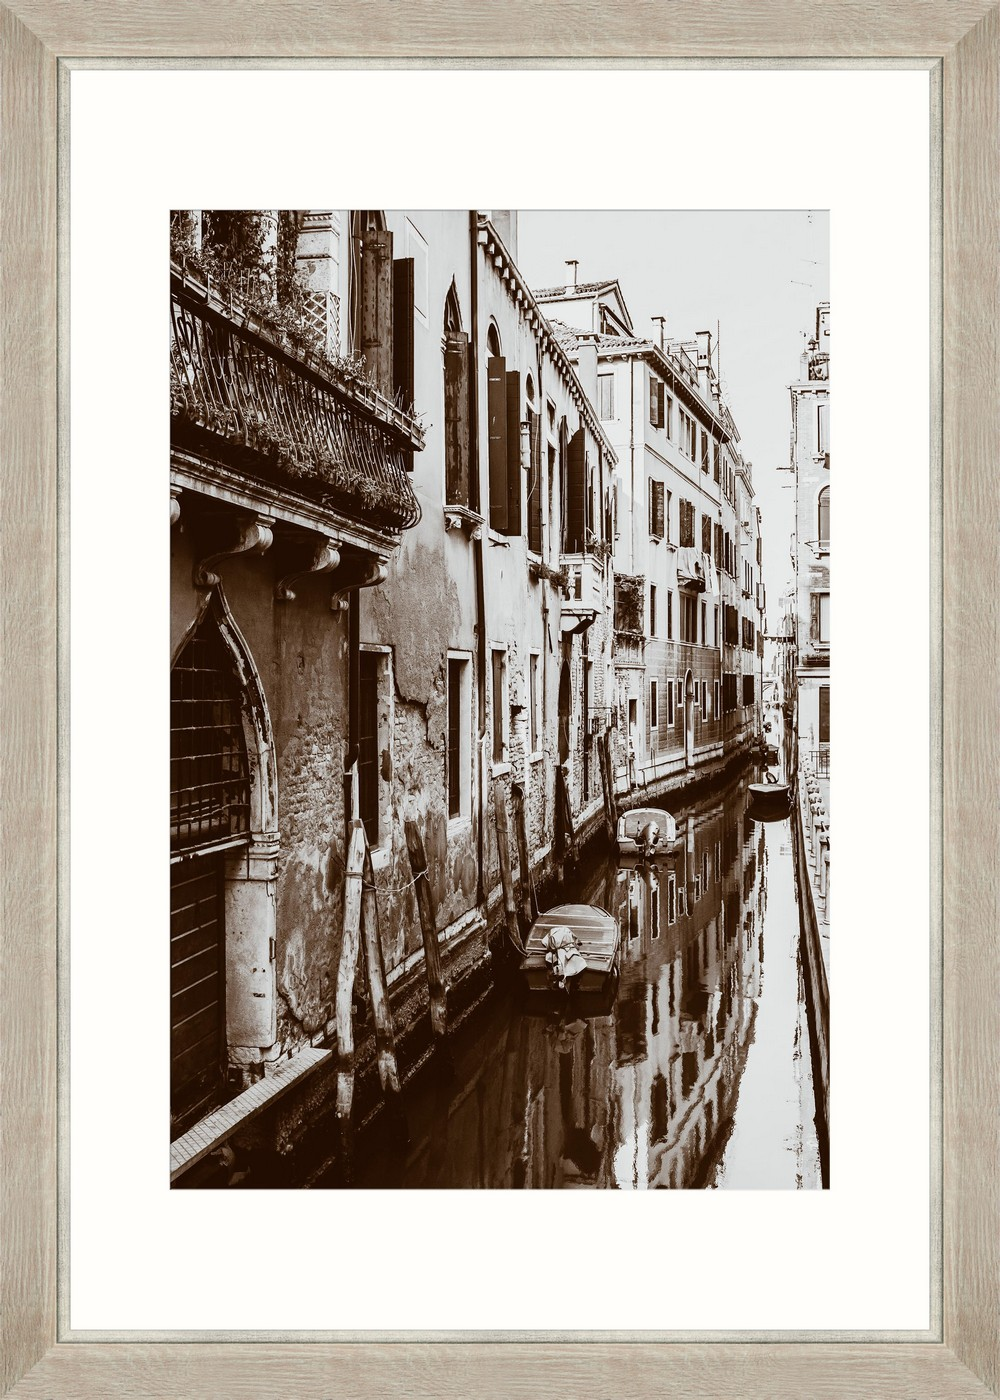 Tablou Framed Art Venician Canal I imagine